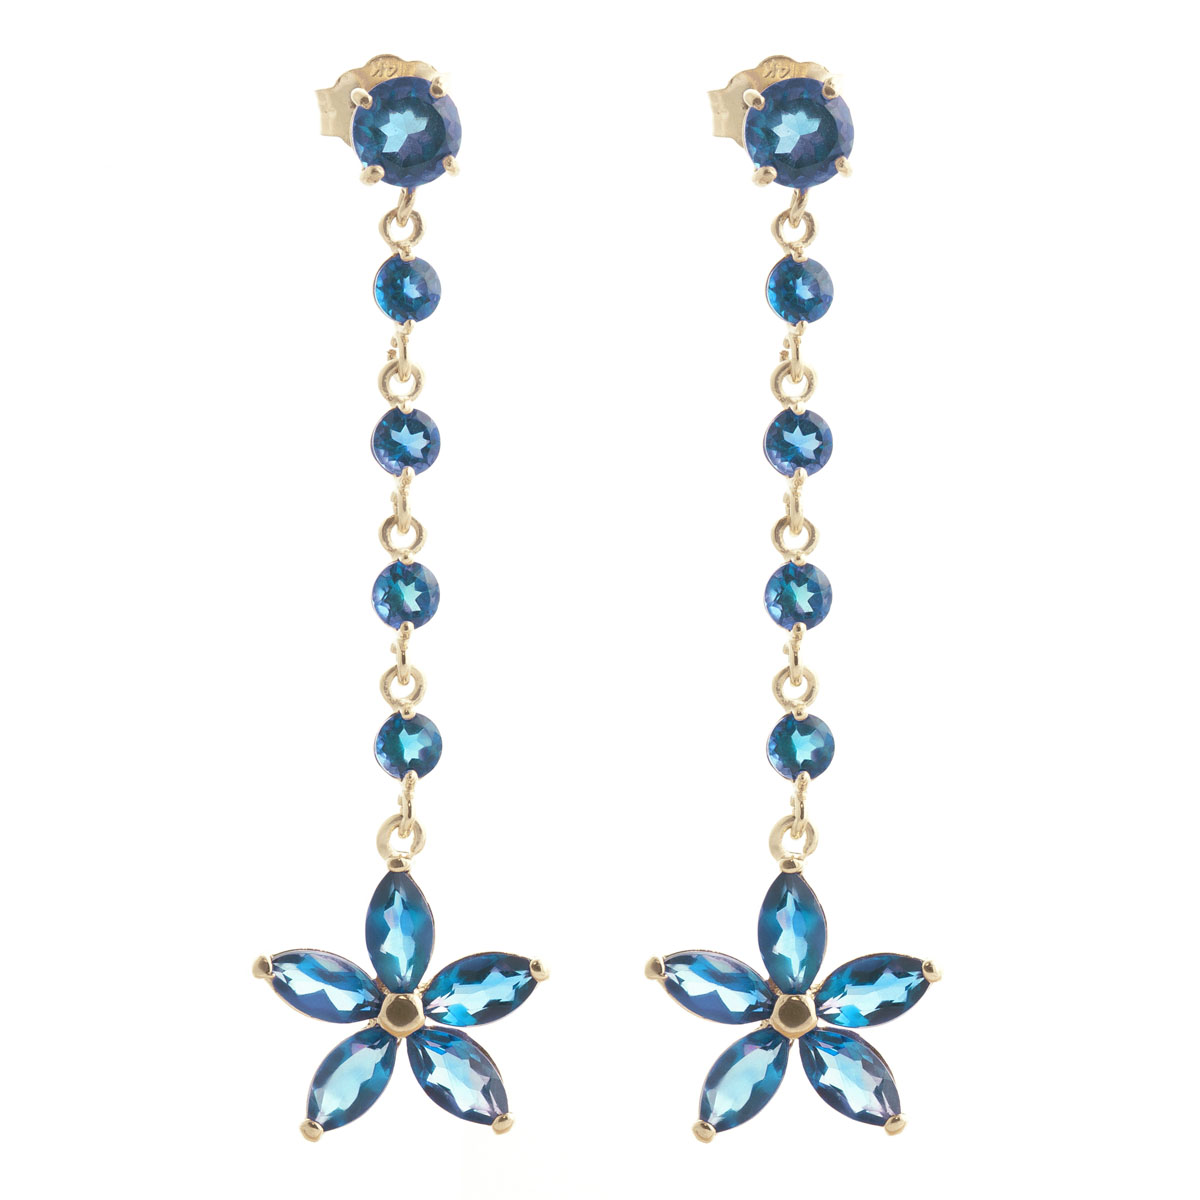 Blue Topaz Daisy Chain Drop Earrings 4.8 ctw in 9ct Gold